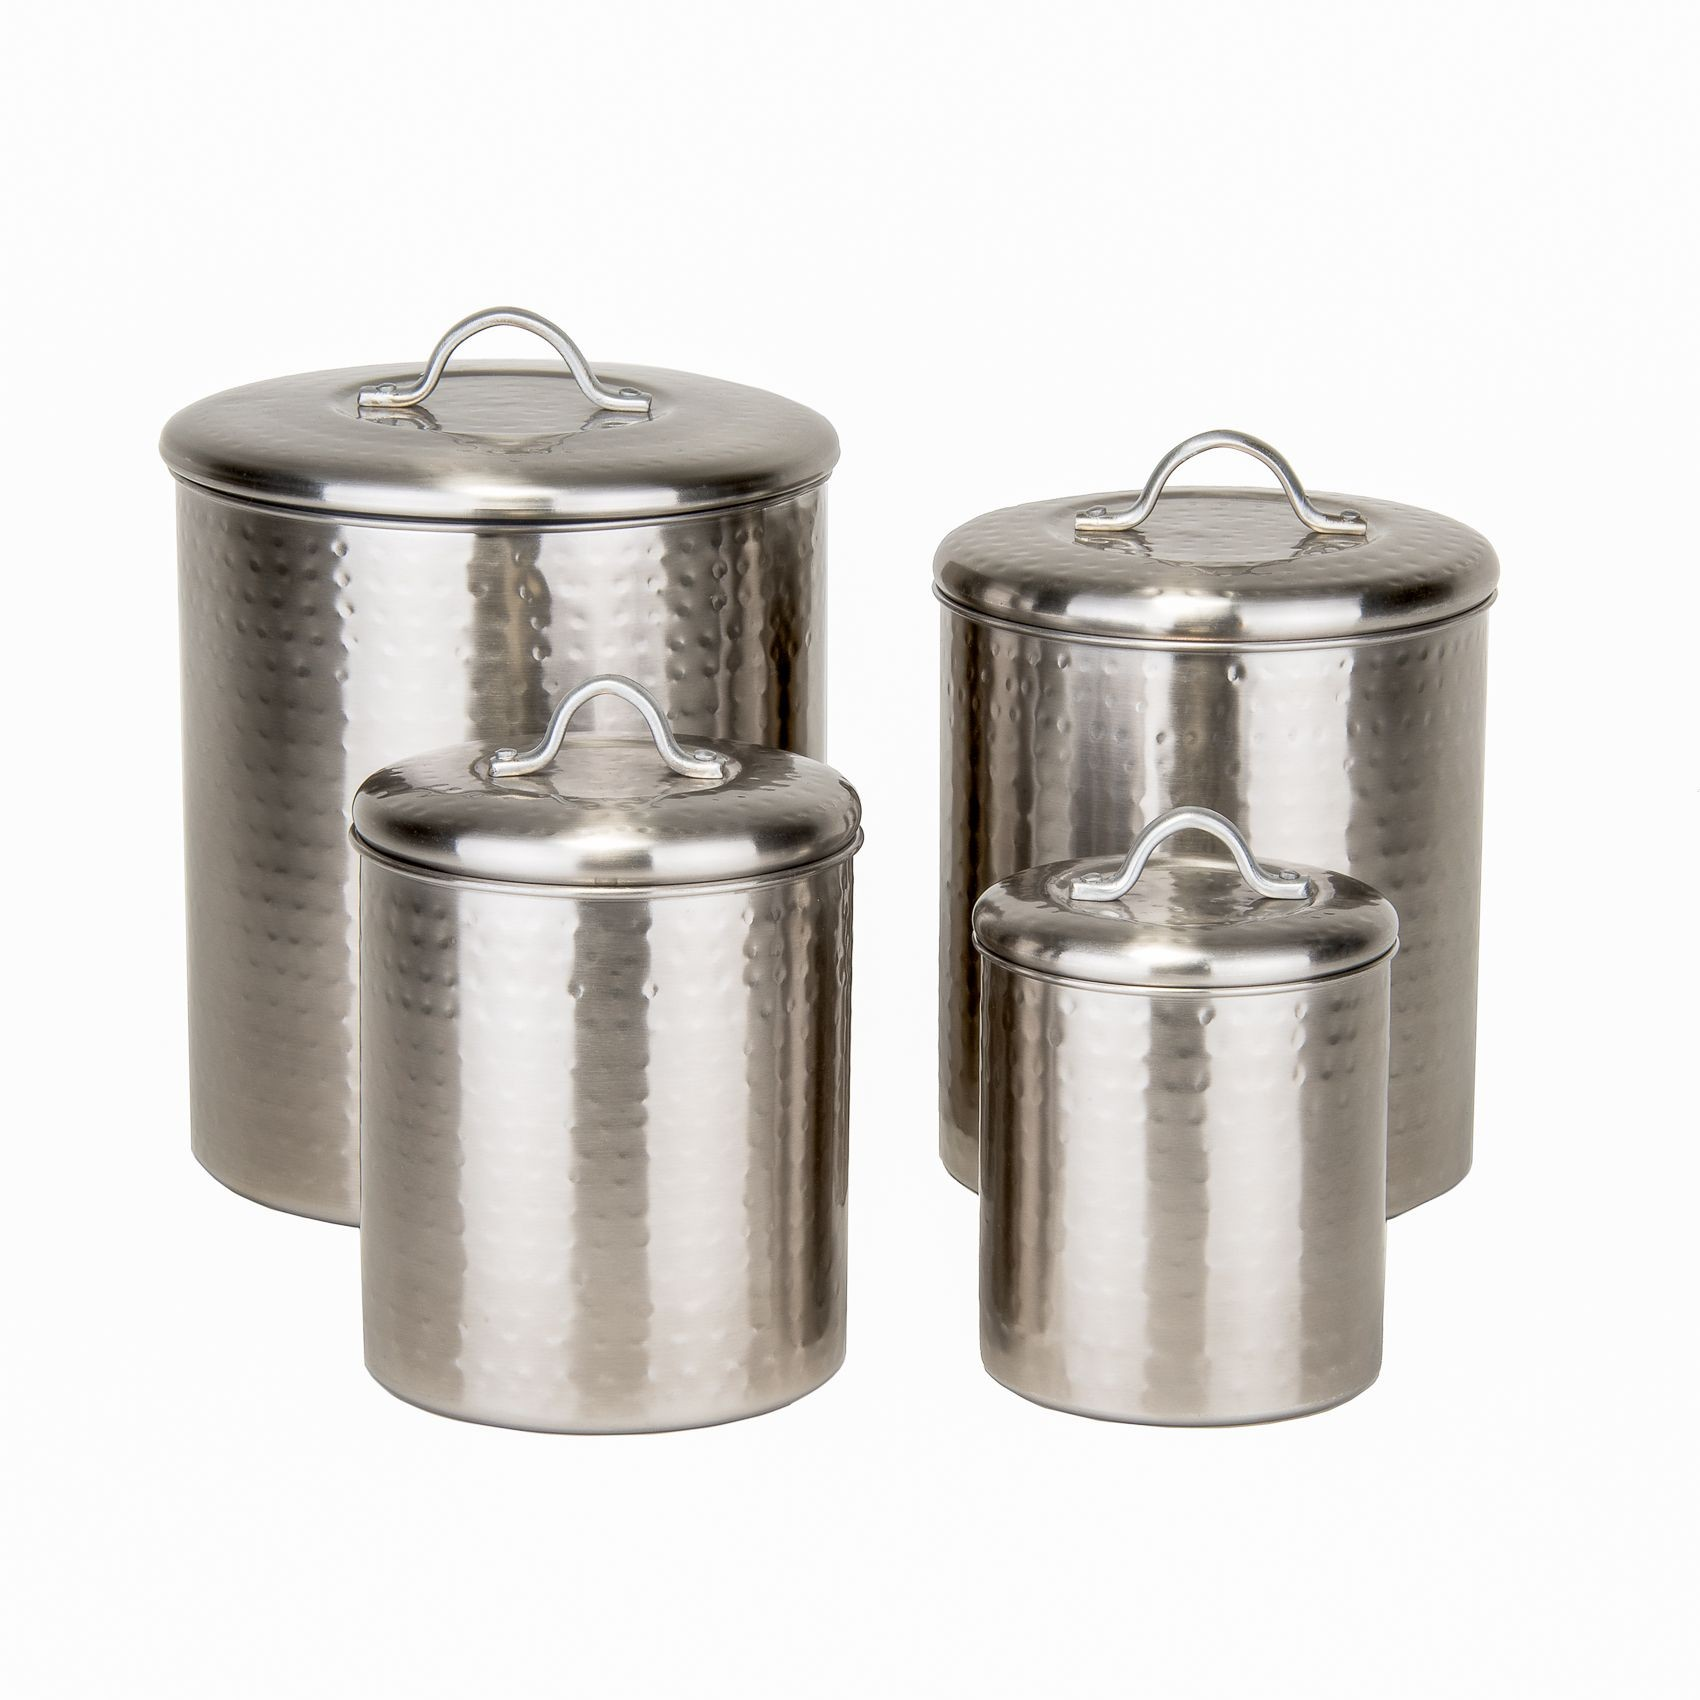 Old Dutch International 1943 Hammered Brushed Nickel Canisters with Fresh Seal Covers, Set of 4